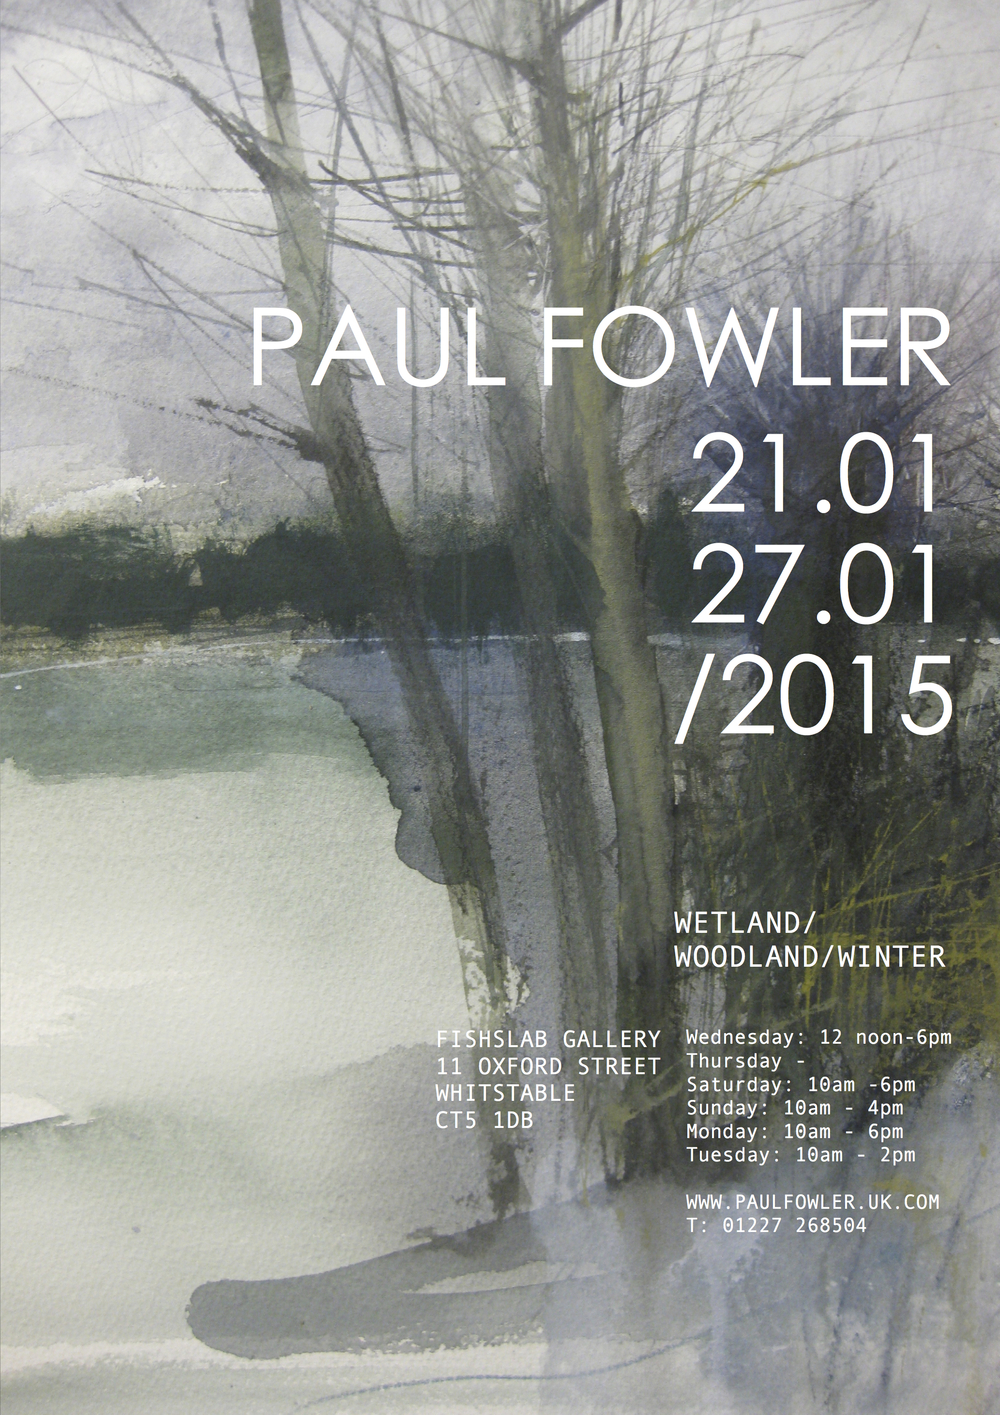 Poster for January 2015